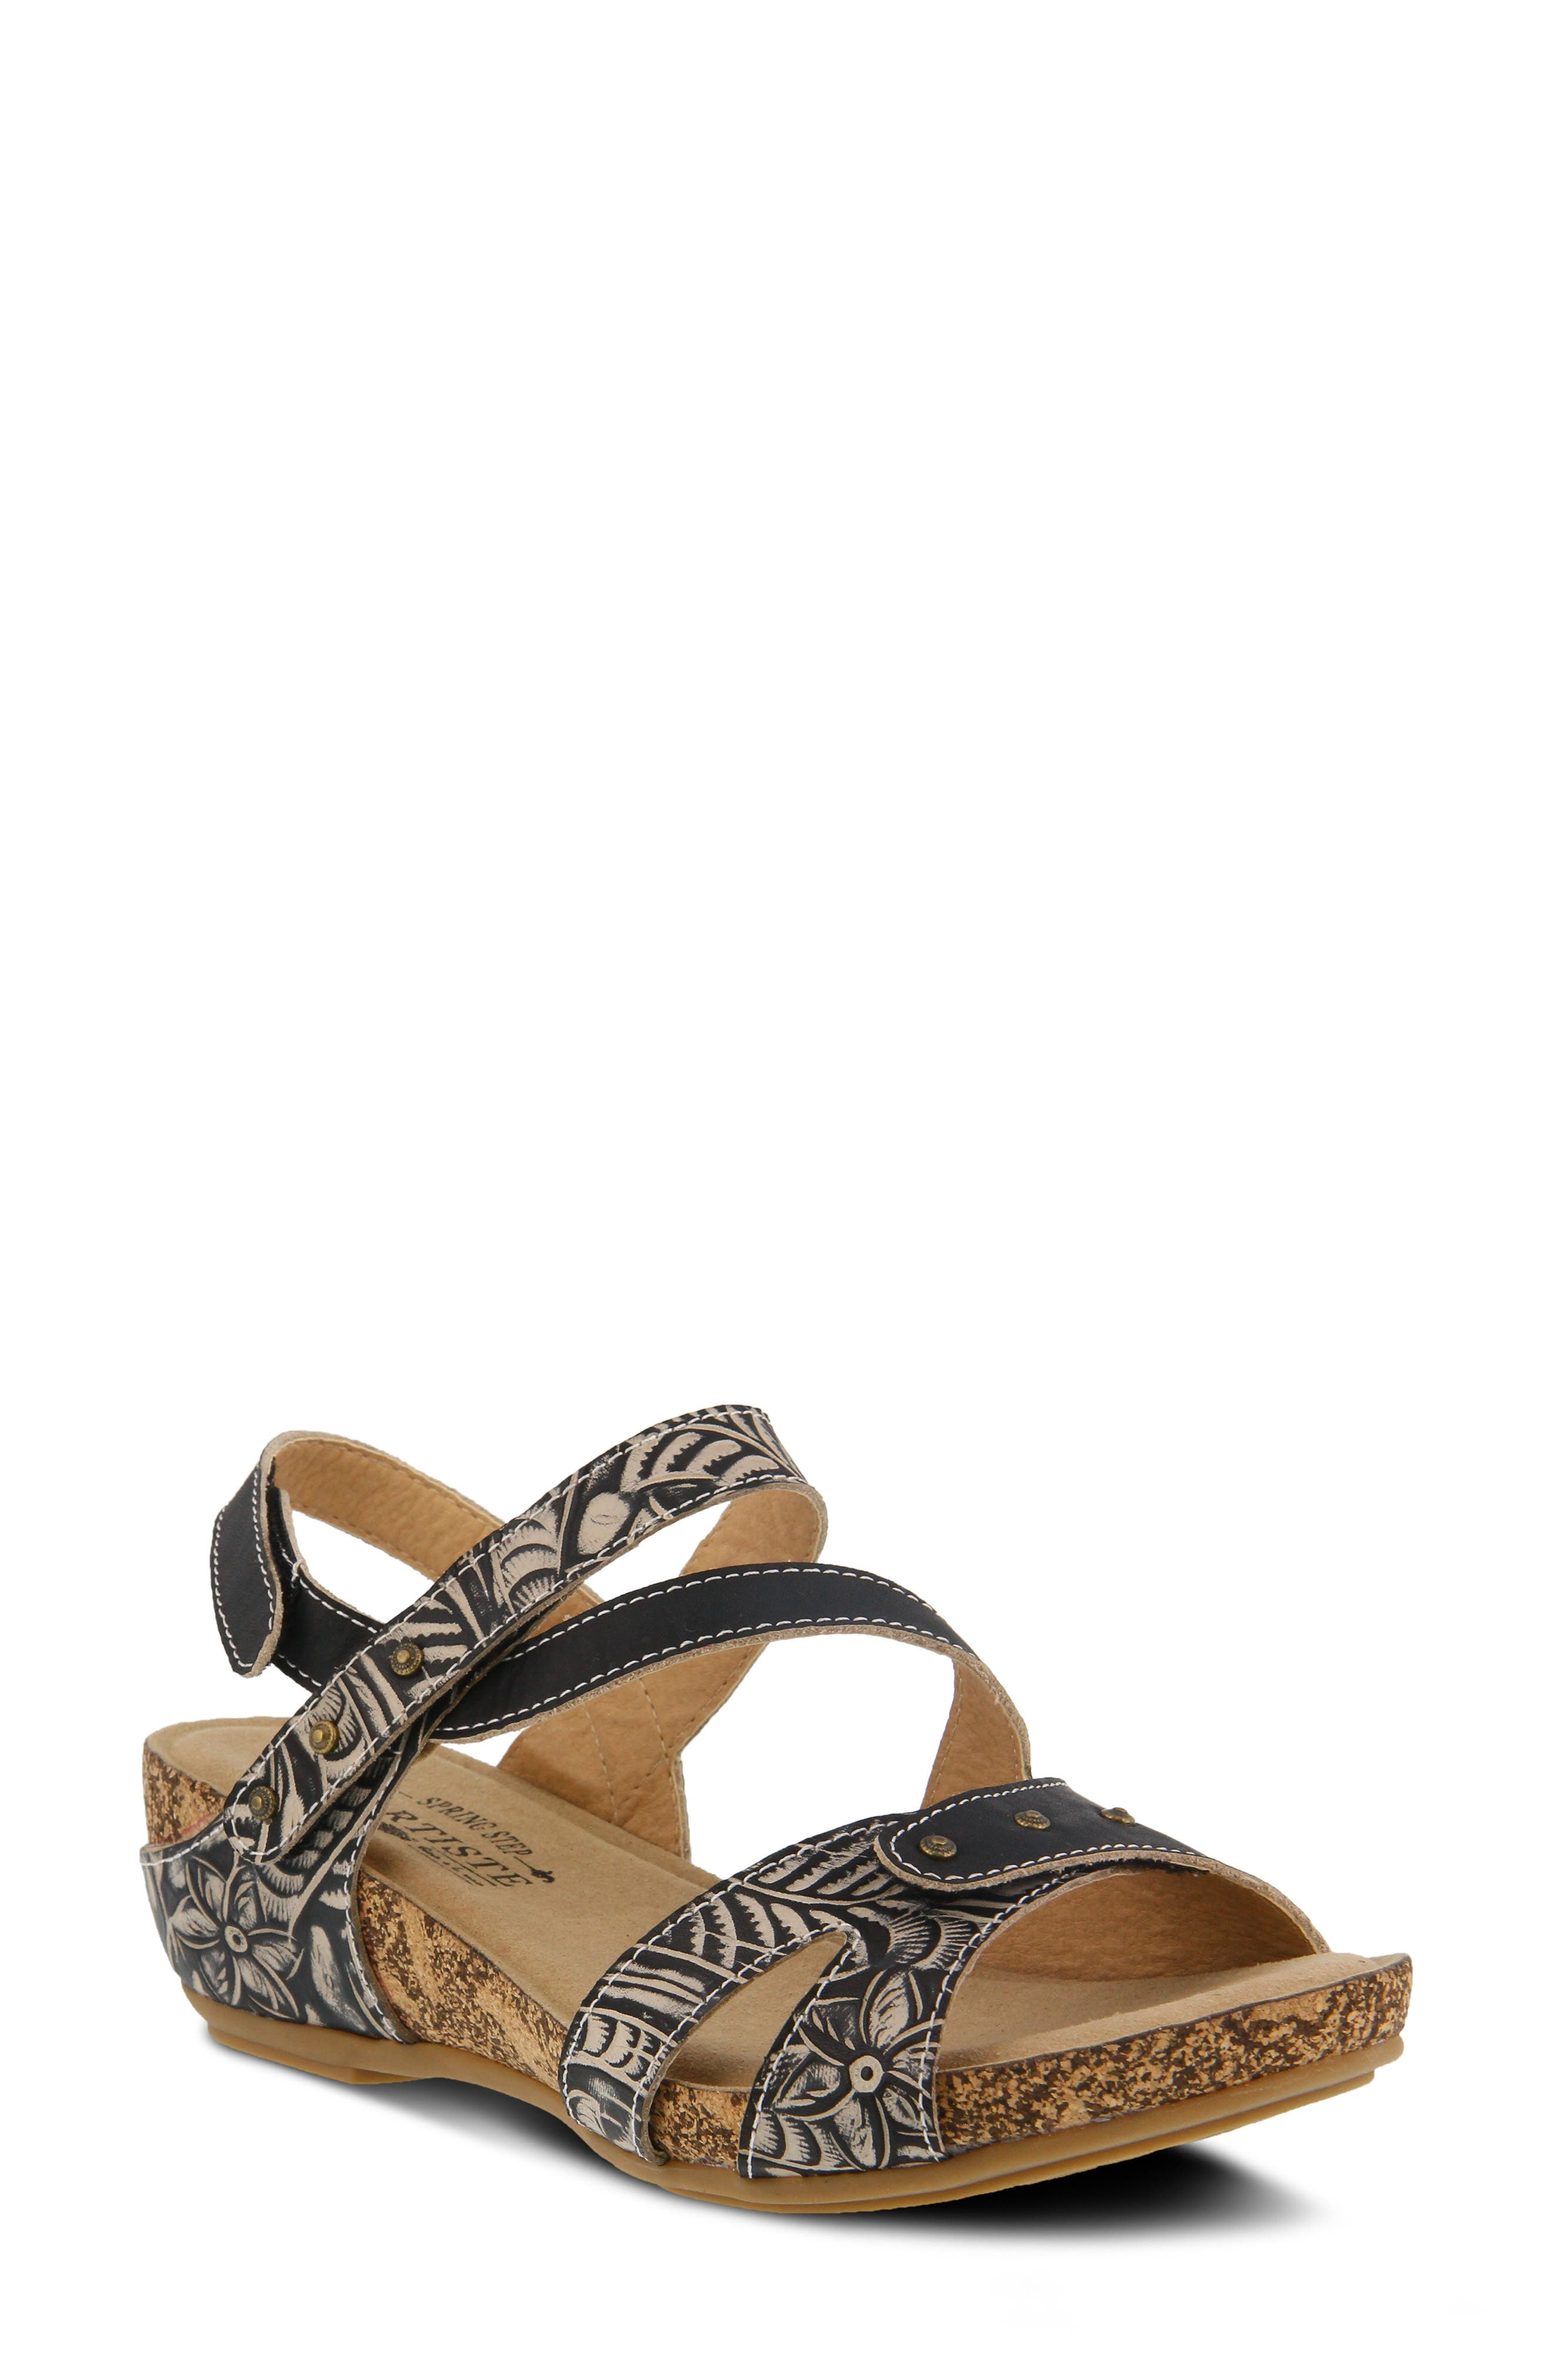 A French-inspired floral brings beautiful pattern and texture to the embossed, adjustable straps wrapping a low wedge sandal fitted with a cushioned footbed. Style Name:L\\\'Artiste Quilana Wedge Sandal (Women). Style Number: 5770846. Available in stores.